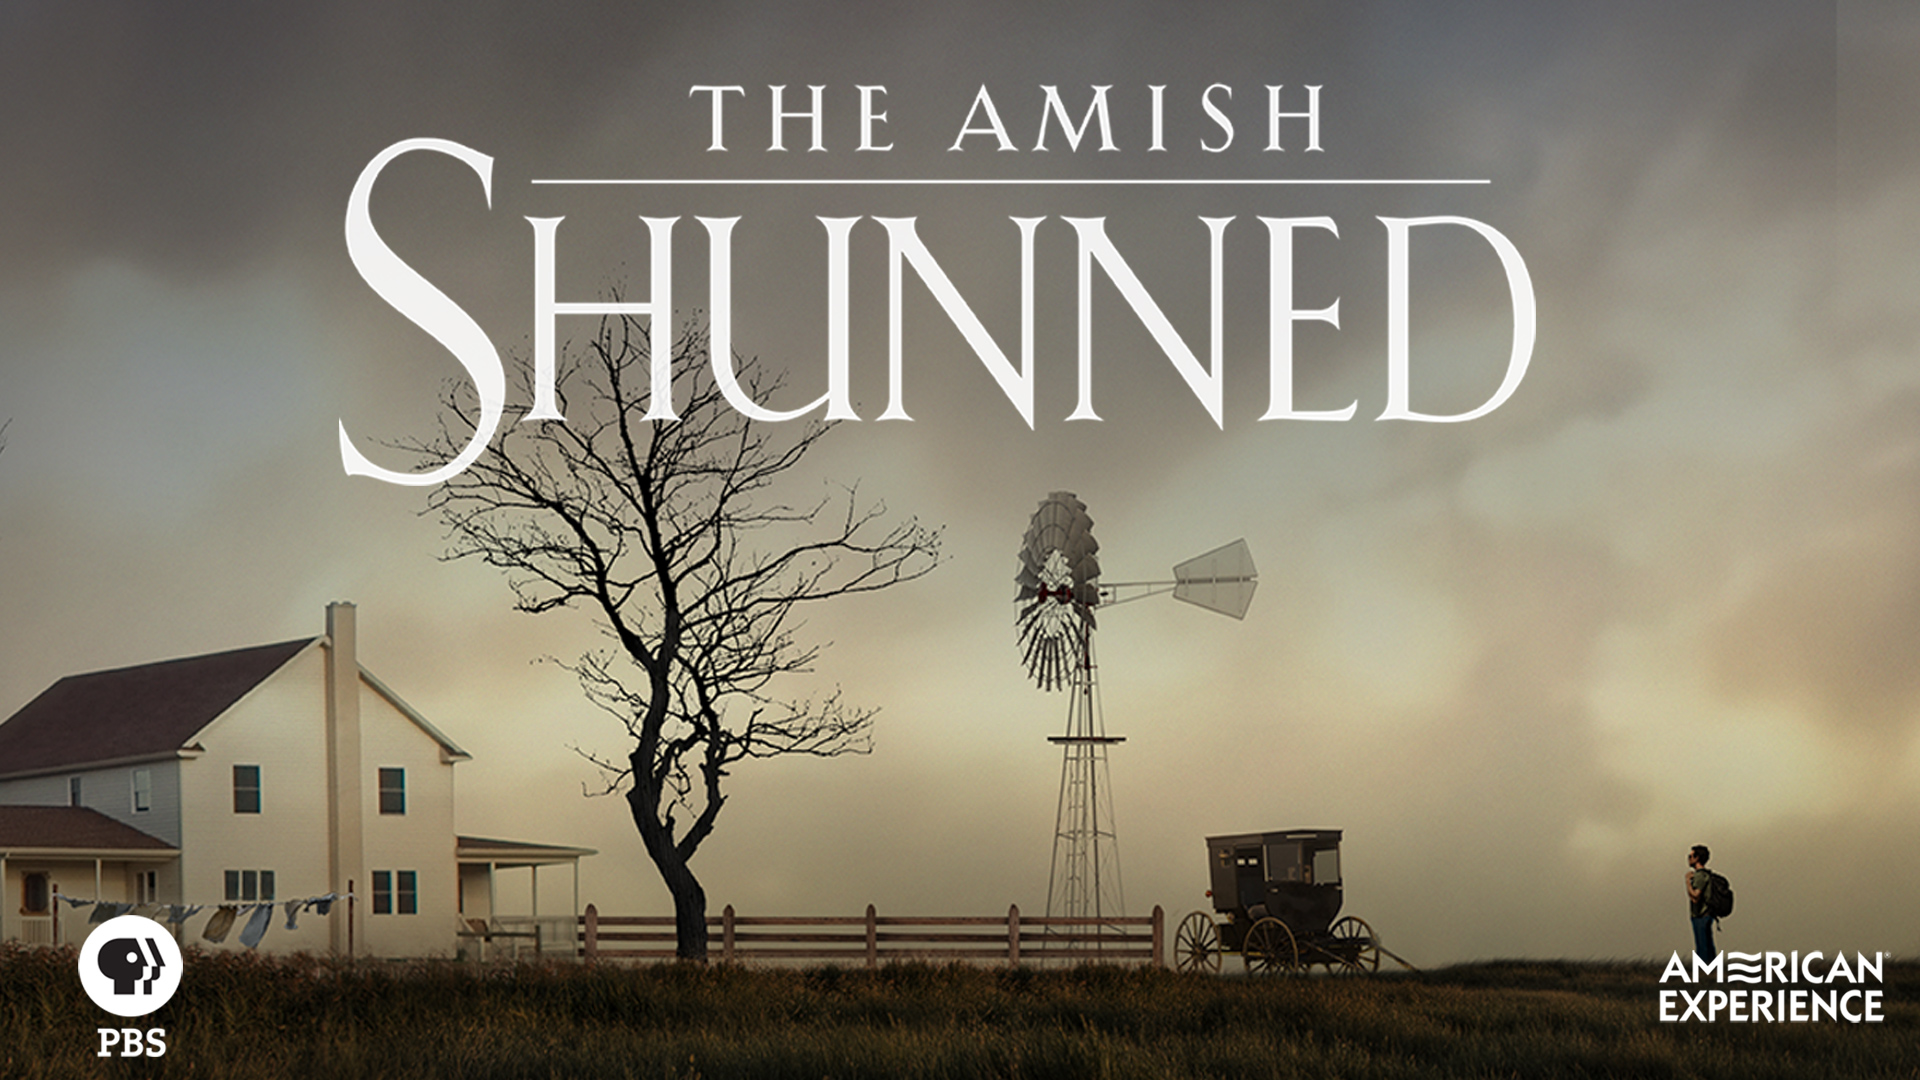 The Amish Shunned